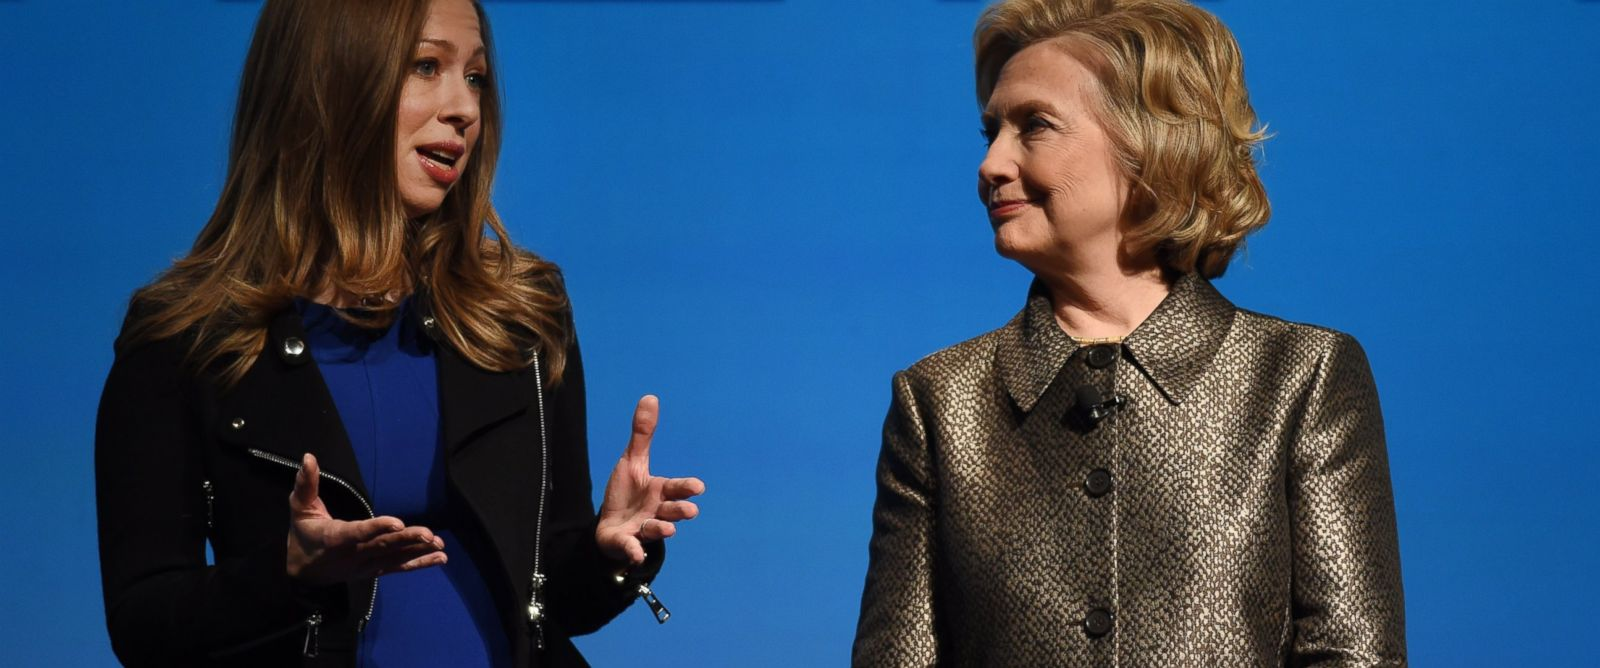 PHOTO: Chelsea and Hillary Clinton speak during a womens equality event, March 9, 2015 in New York.